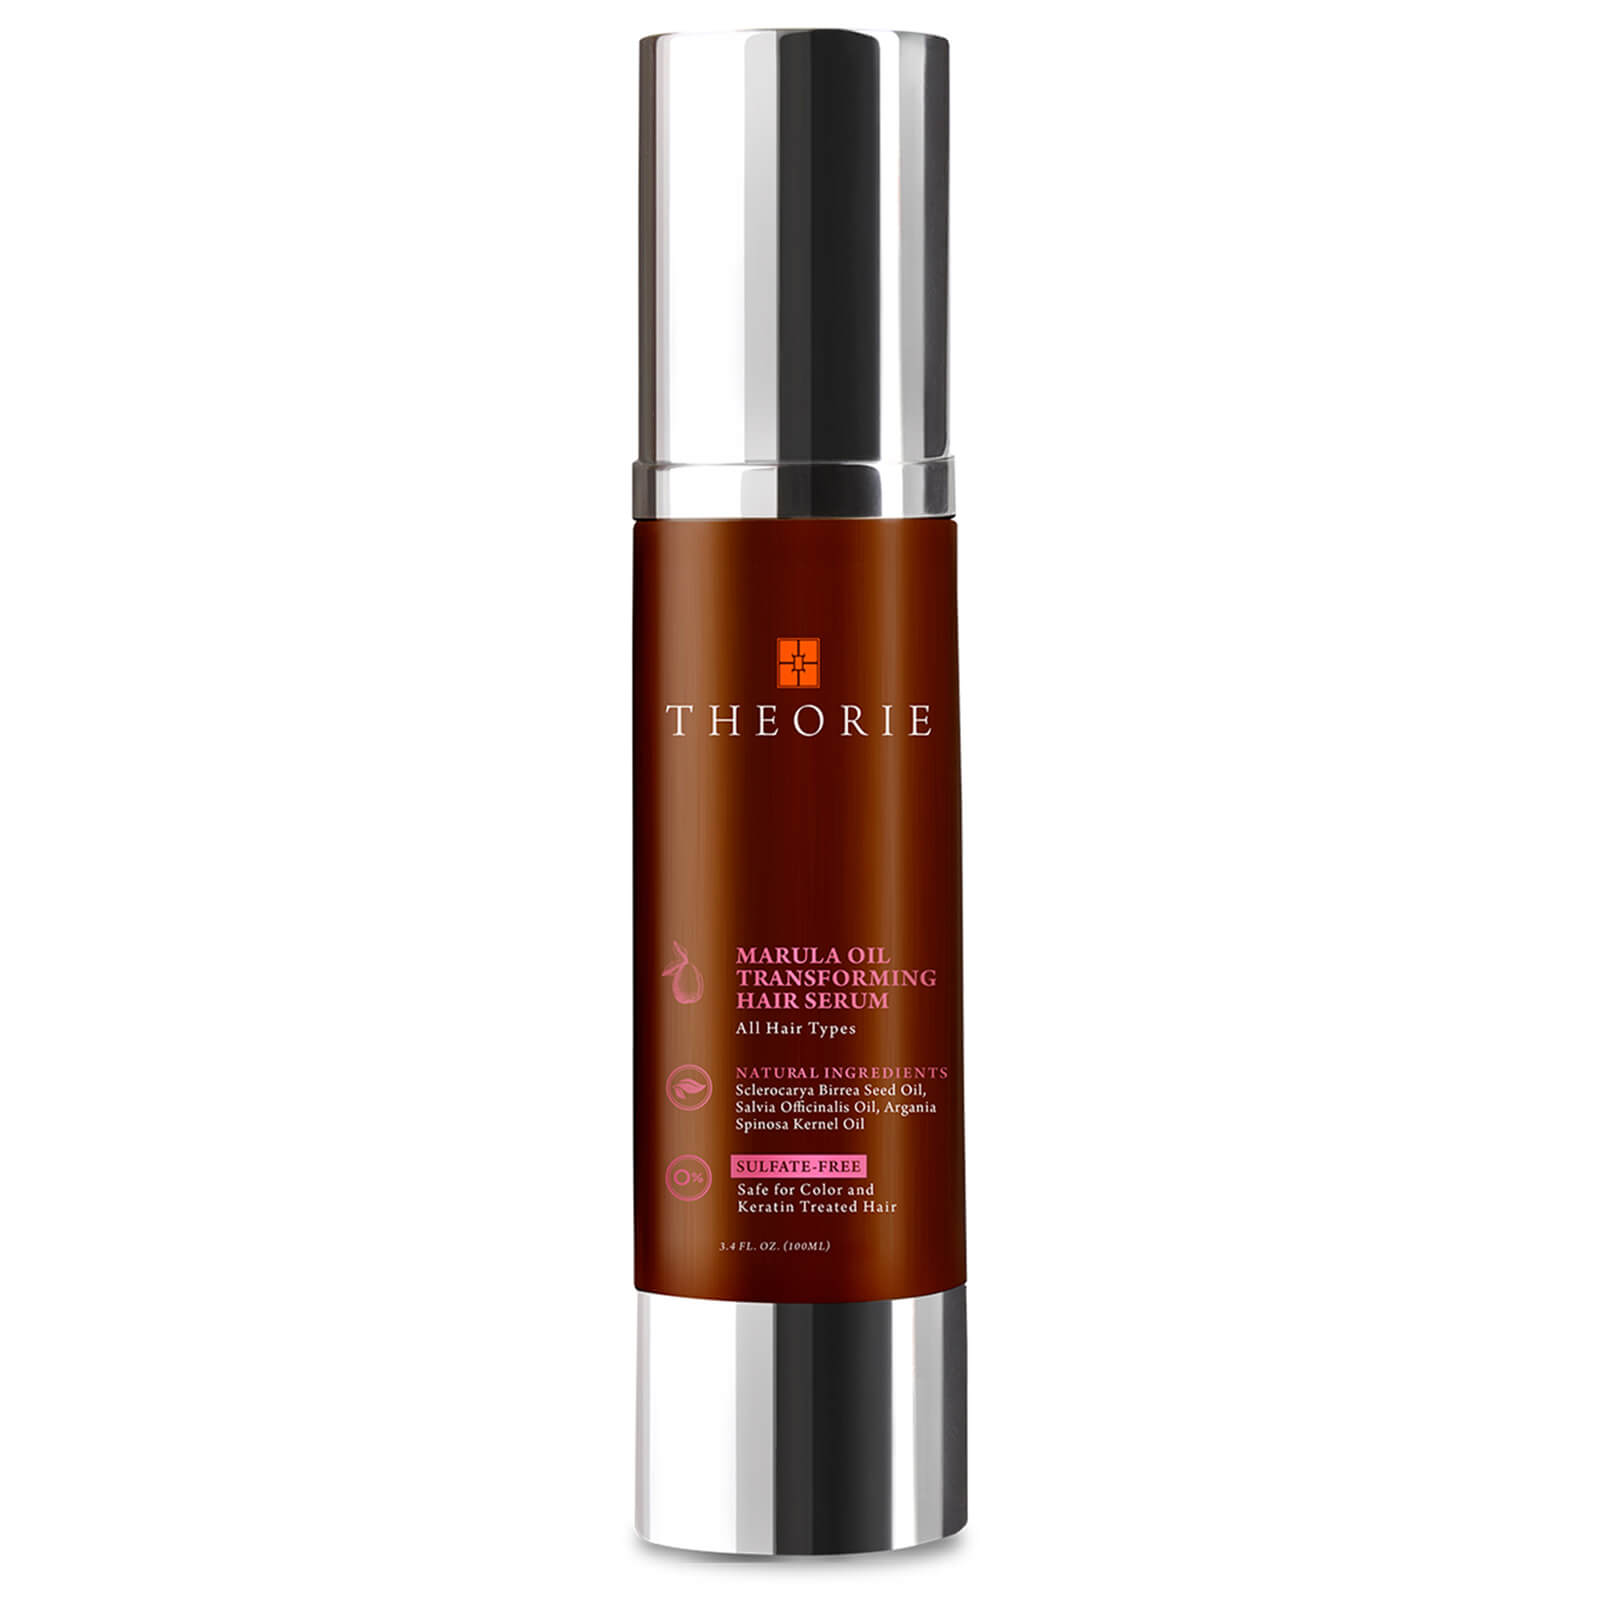 Theorie Marula Oil Transforming Hair Serum